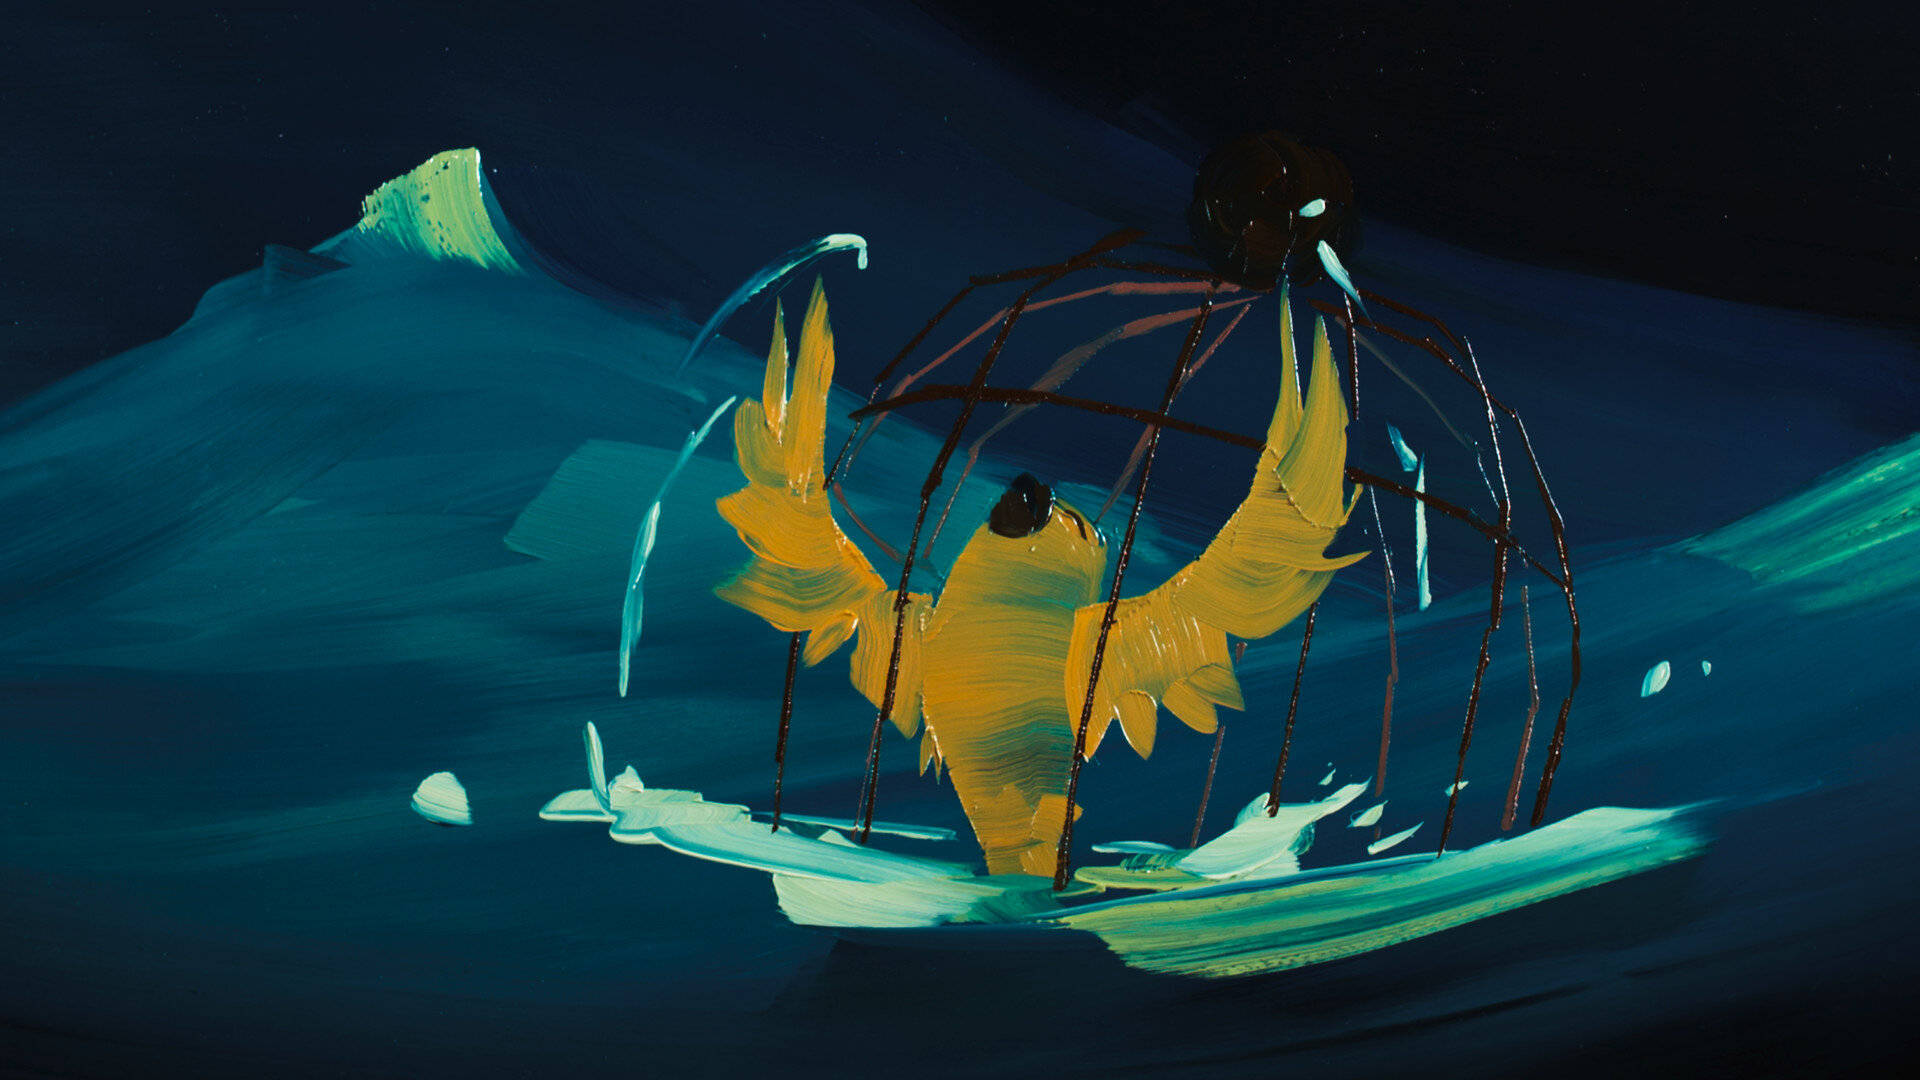 Still from The Bird and the Whale